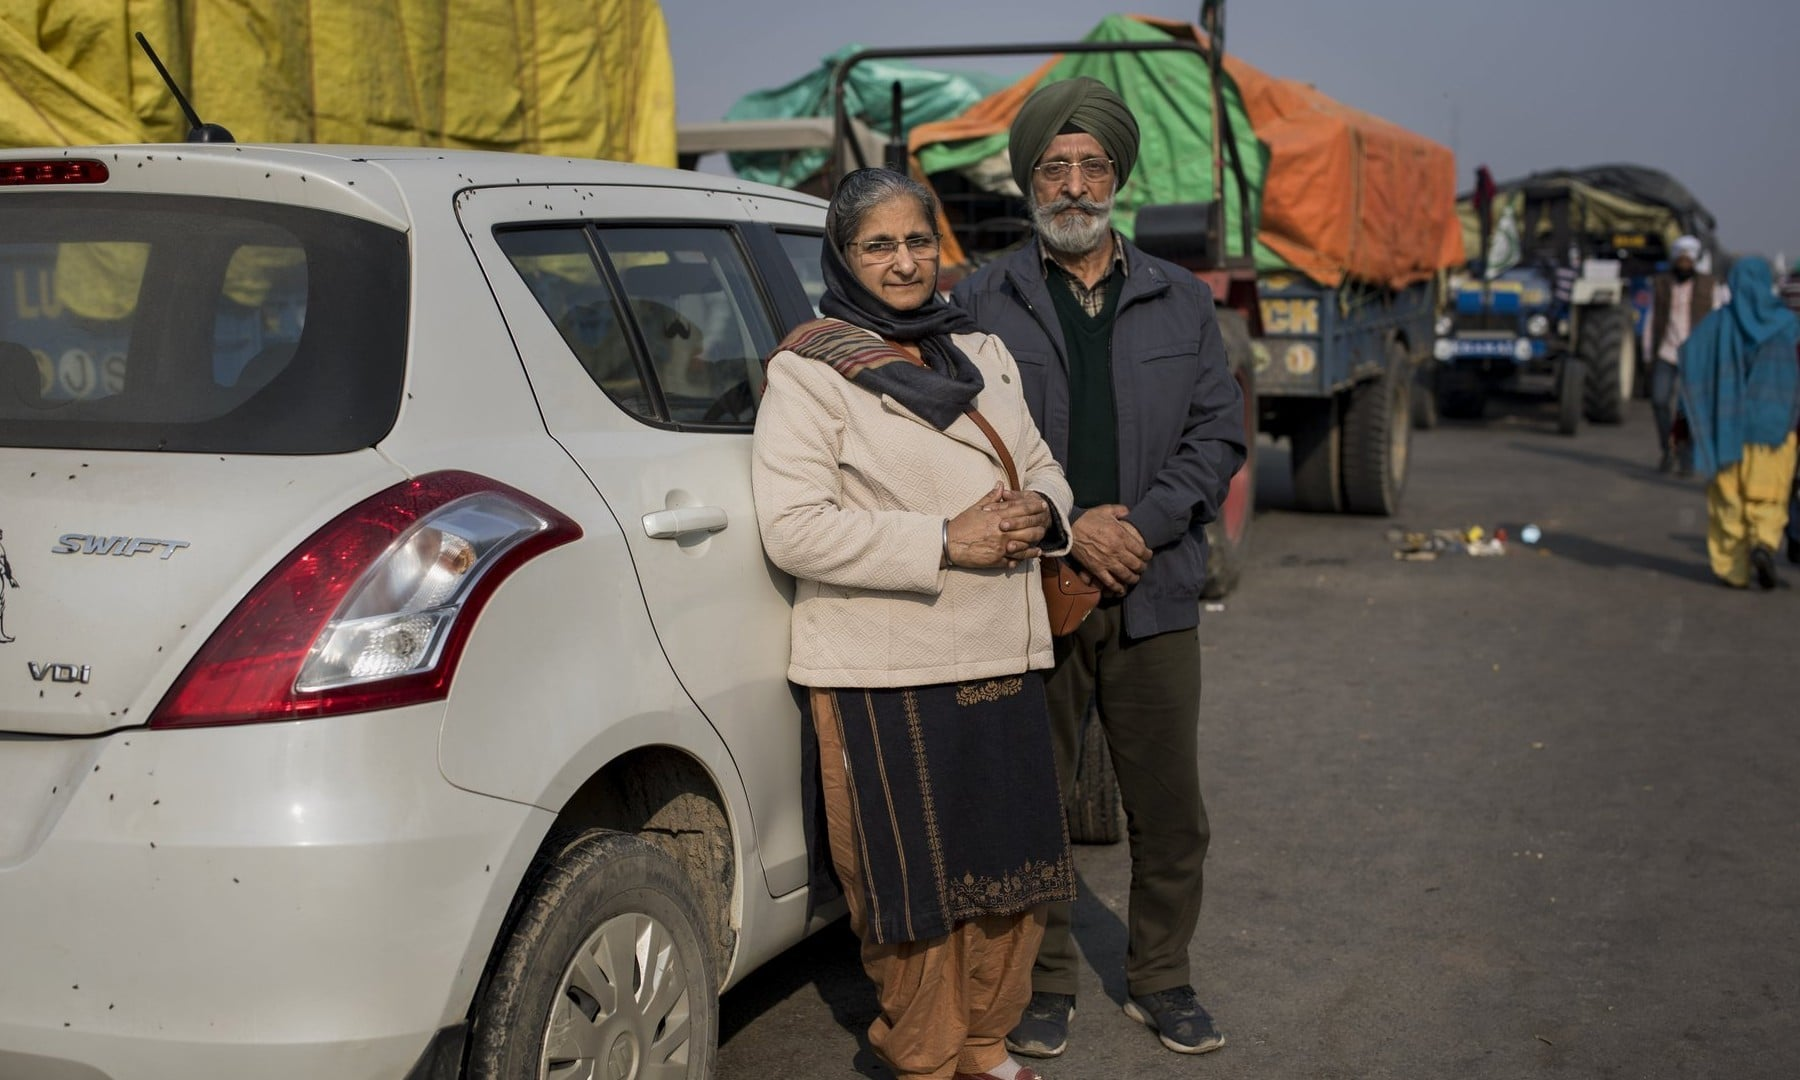 Dharam Singh Sandhu, 67, and his wife Nirmaljeet Singh Kaur, 66, stand for a photograph next to their car where they are spending nights parked near the site of a protest against new farming laws, at the Delhi-Haryana state border on Dec 1. —  AP